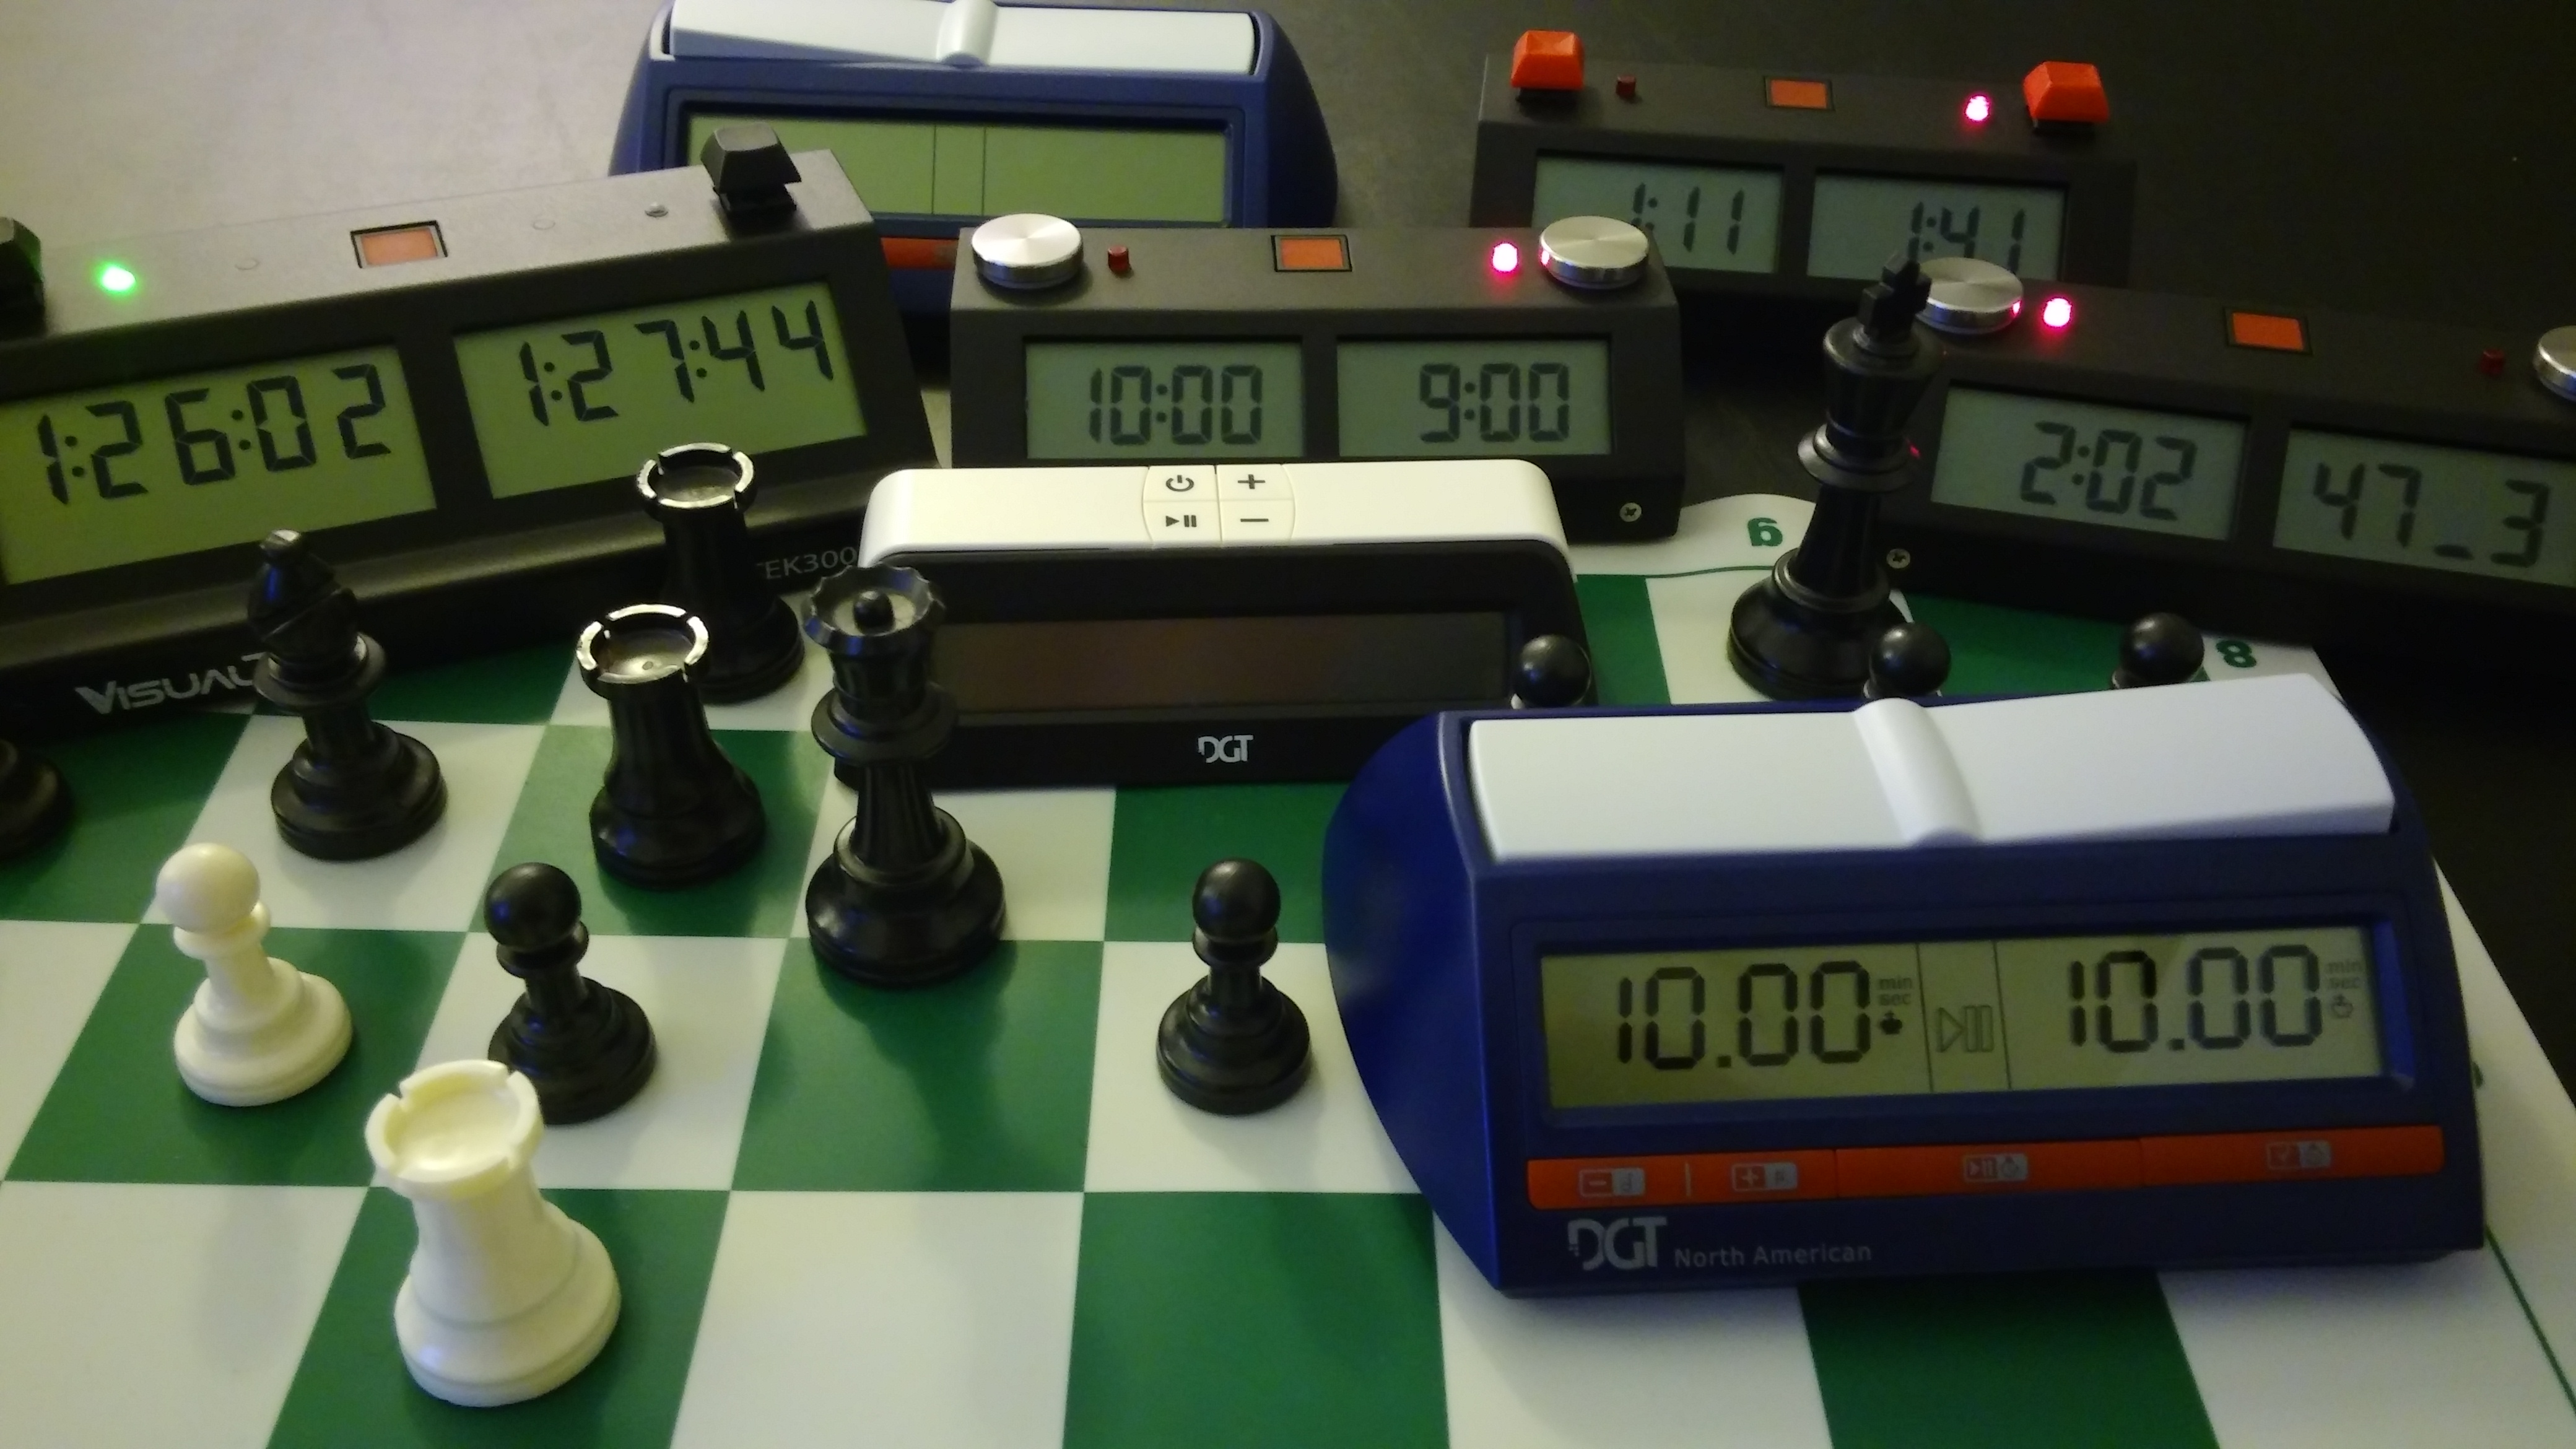 Bobby Fischer's chess clock